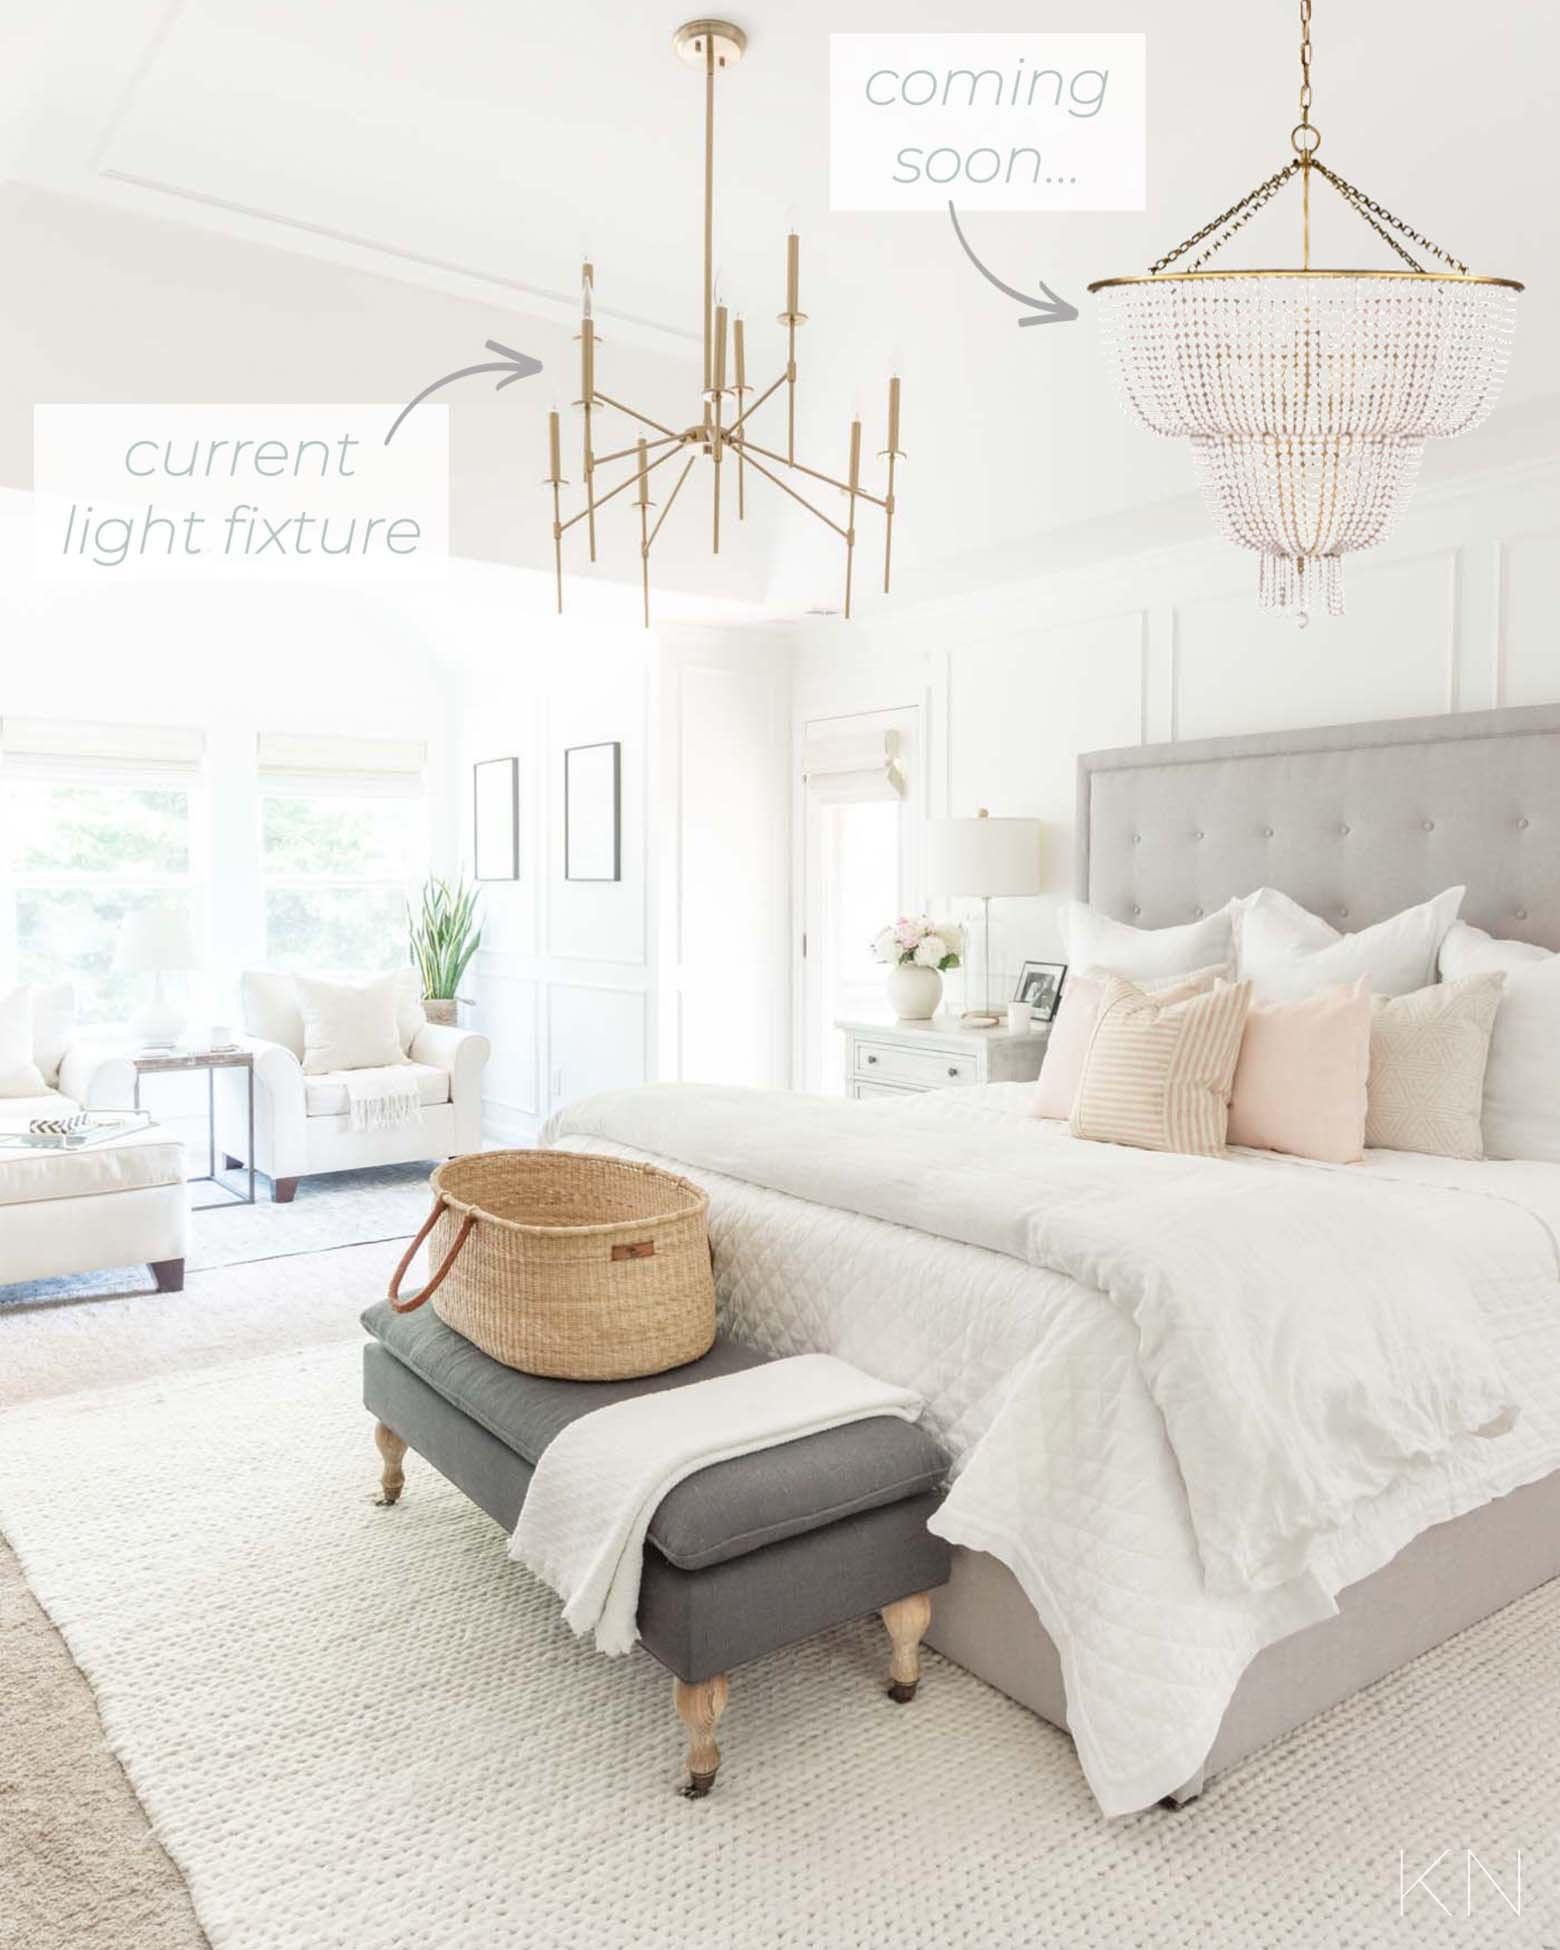 15 Beaded Chandeliers for the Master Bedroom